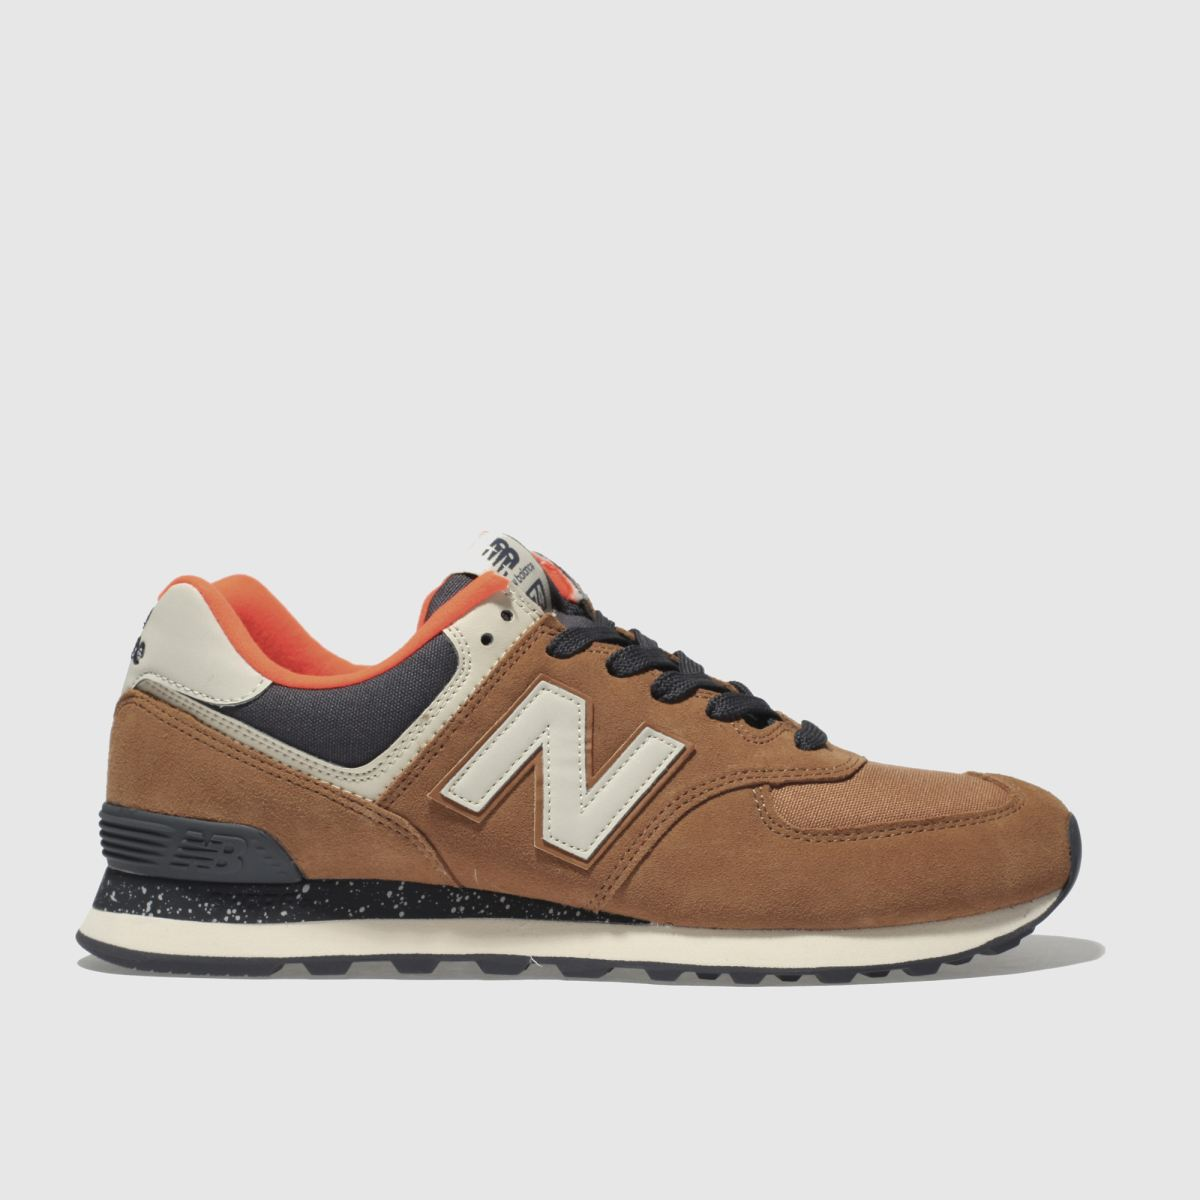 New Balance Tan 574 Trainers